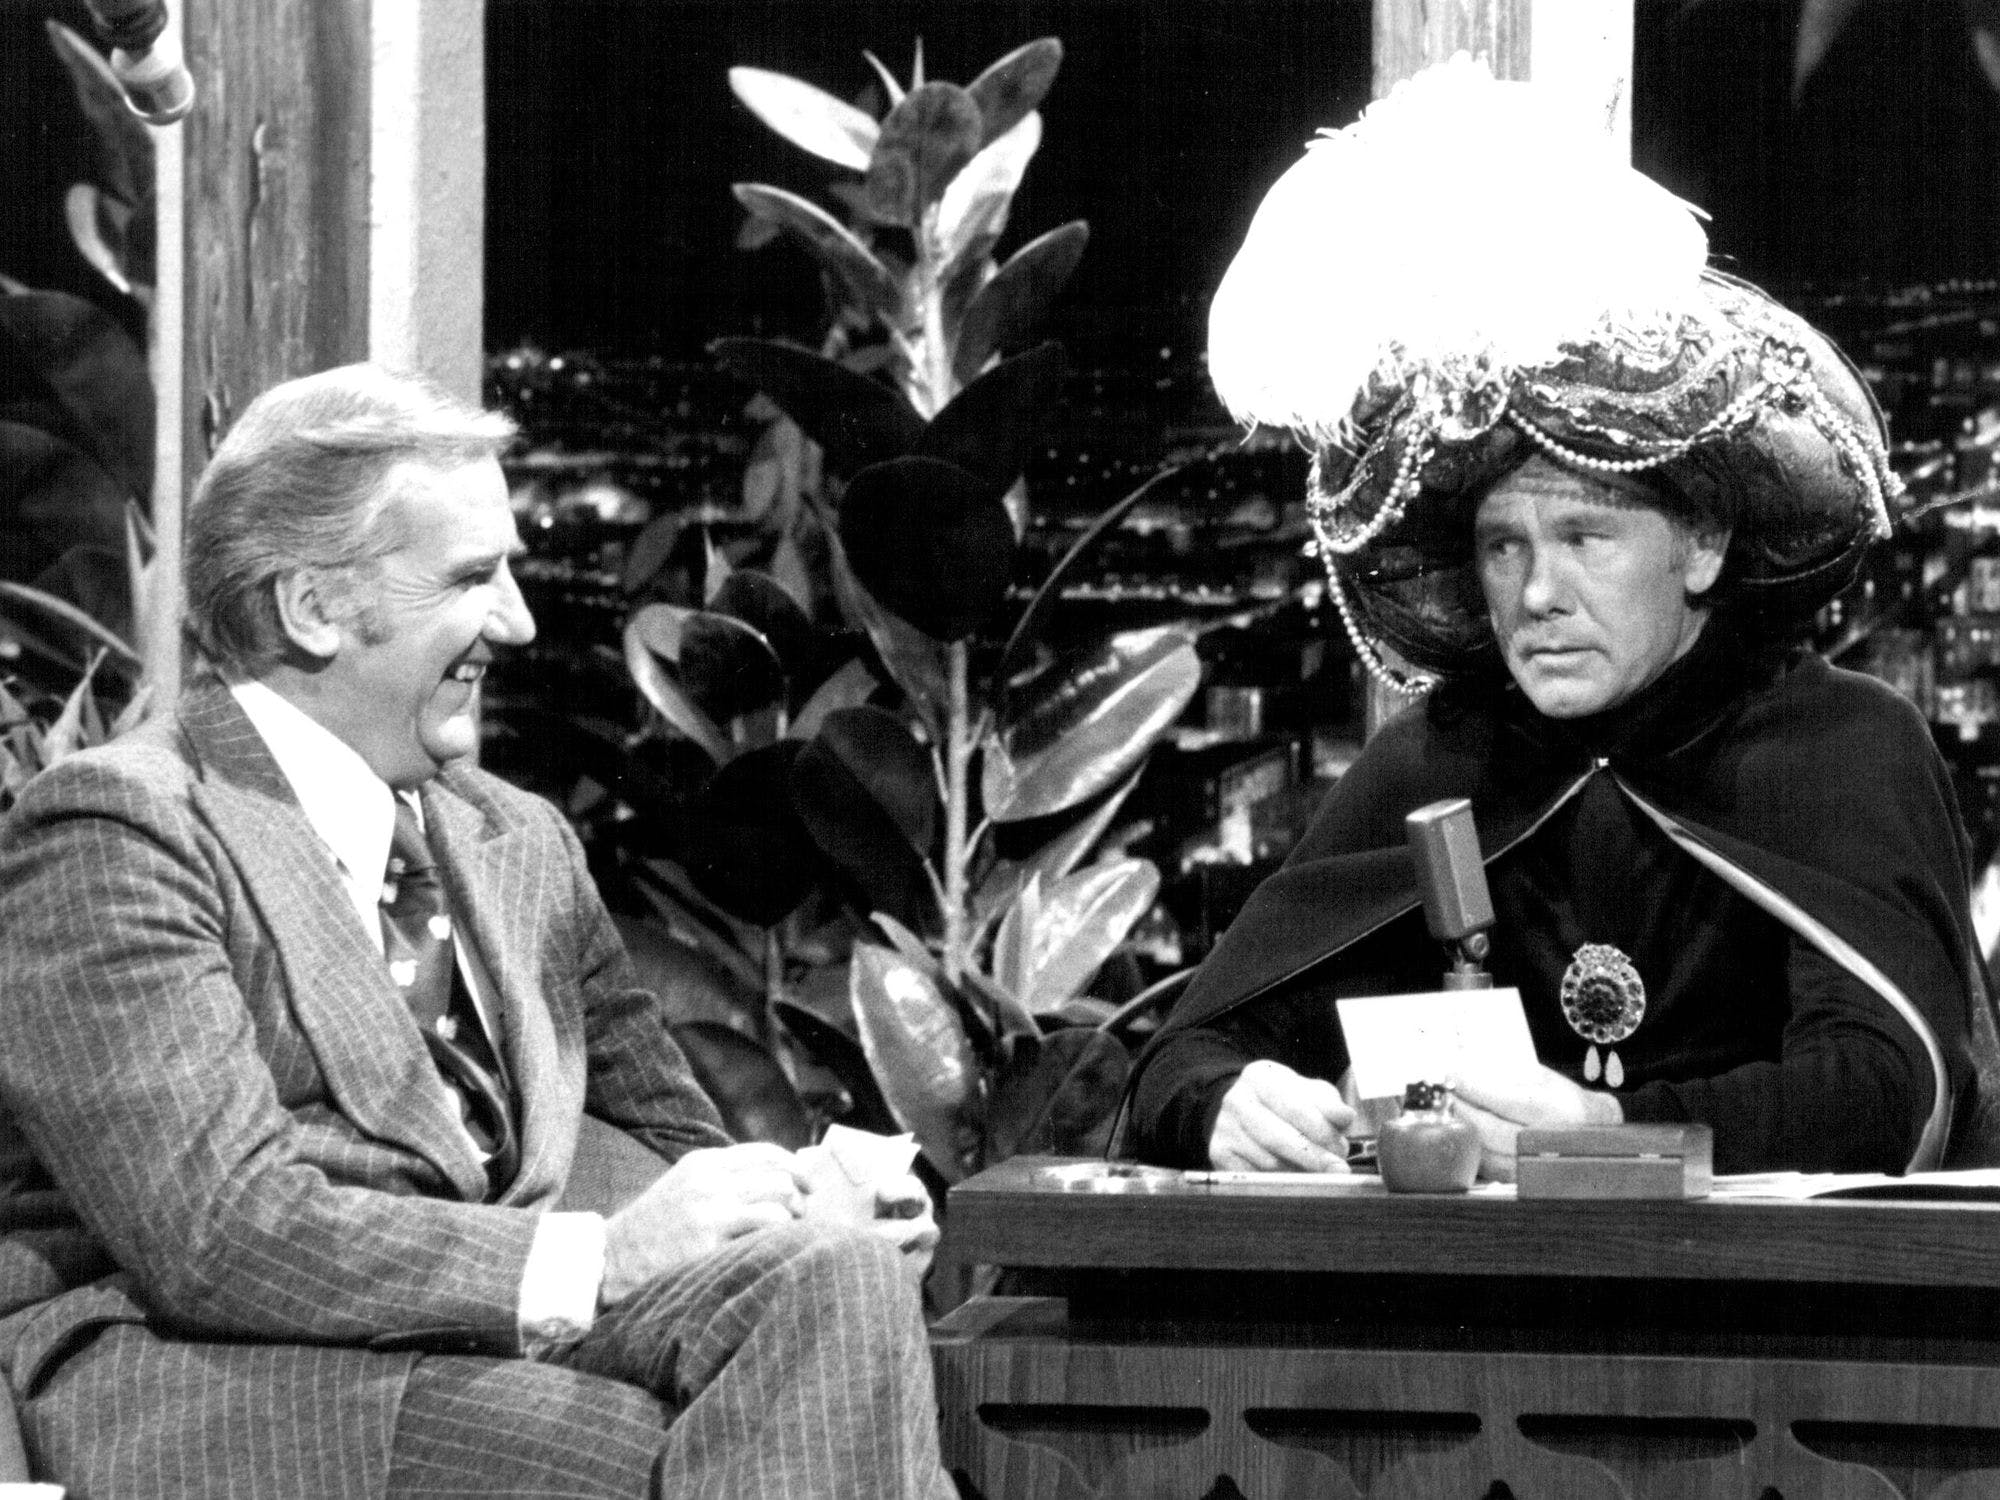 Johnny Carson 'Tonight Show' DVD reflects 1970s — warts and all | Star Tribune